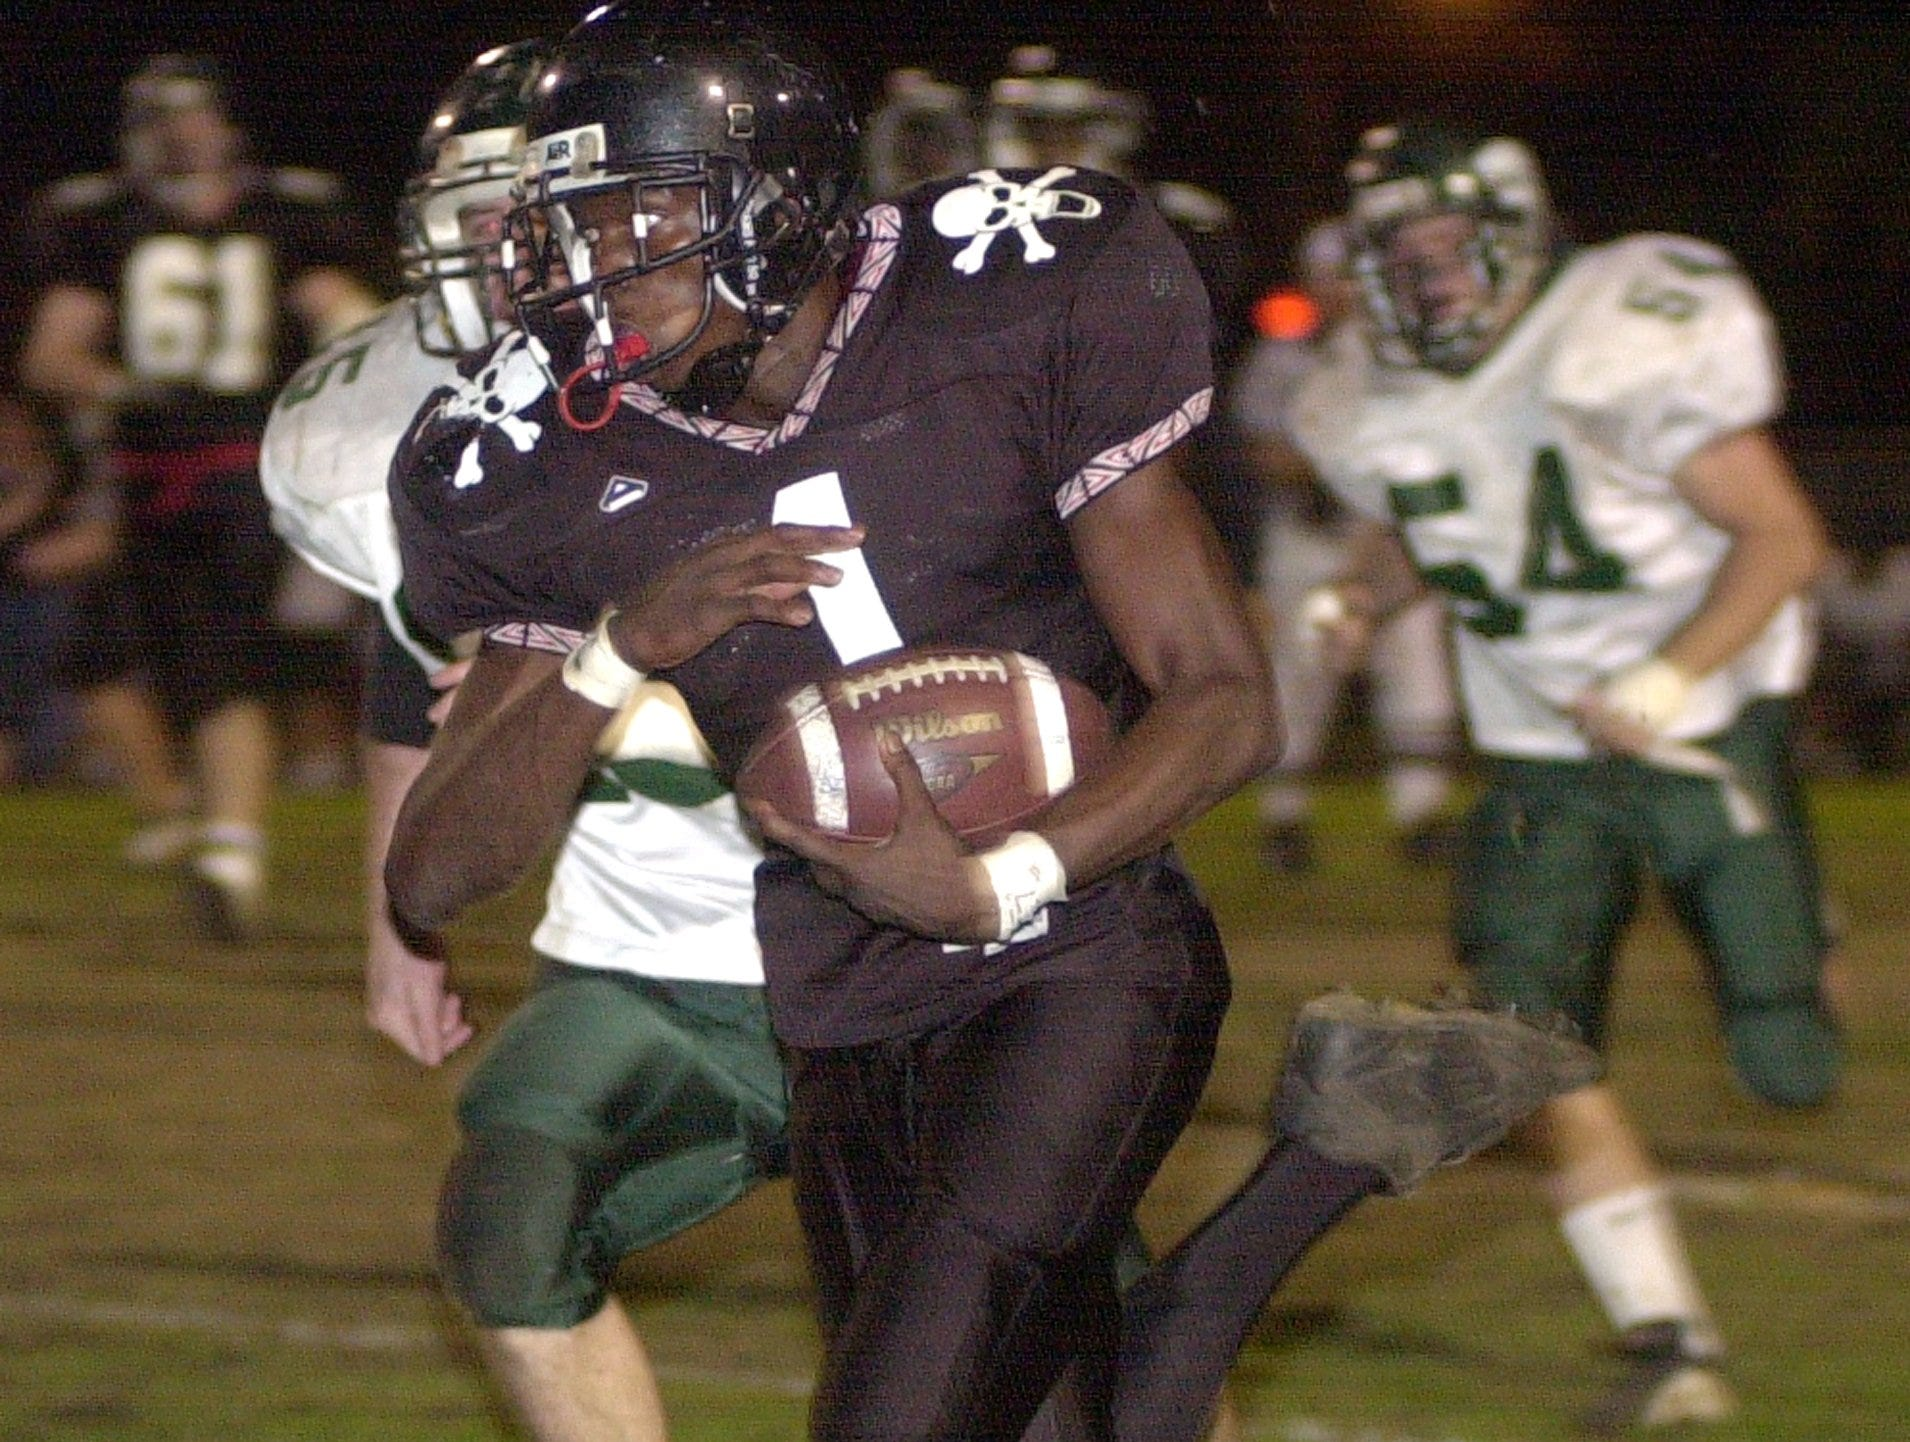 Reggie Nelson of Palm Bay was drafted by the Jacksonville Jaguars in the first round of the 2007 draft, 21st overall.